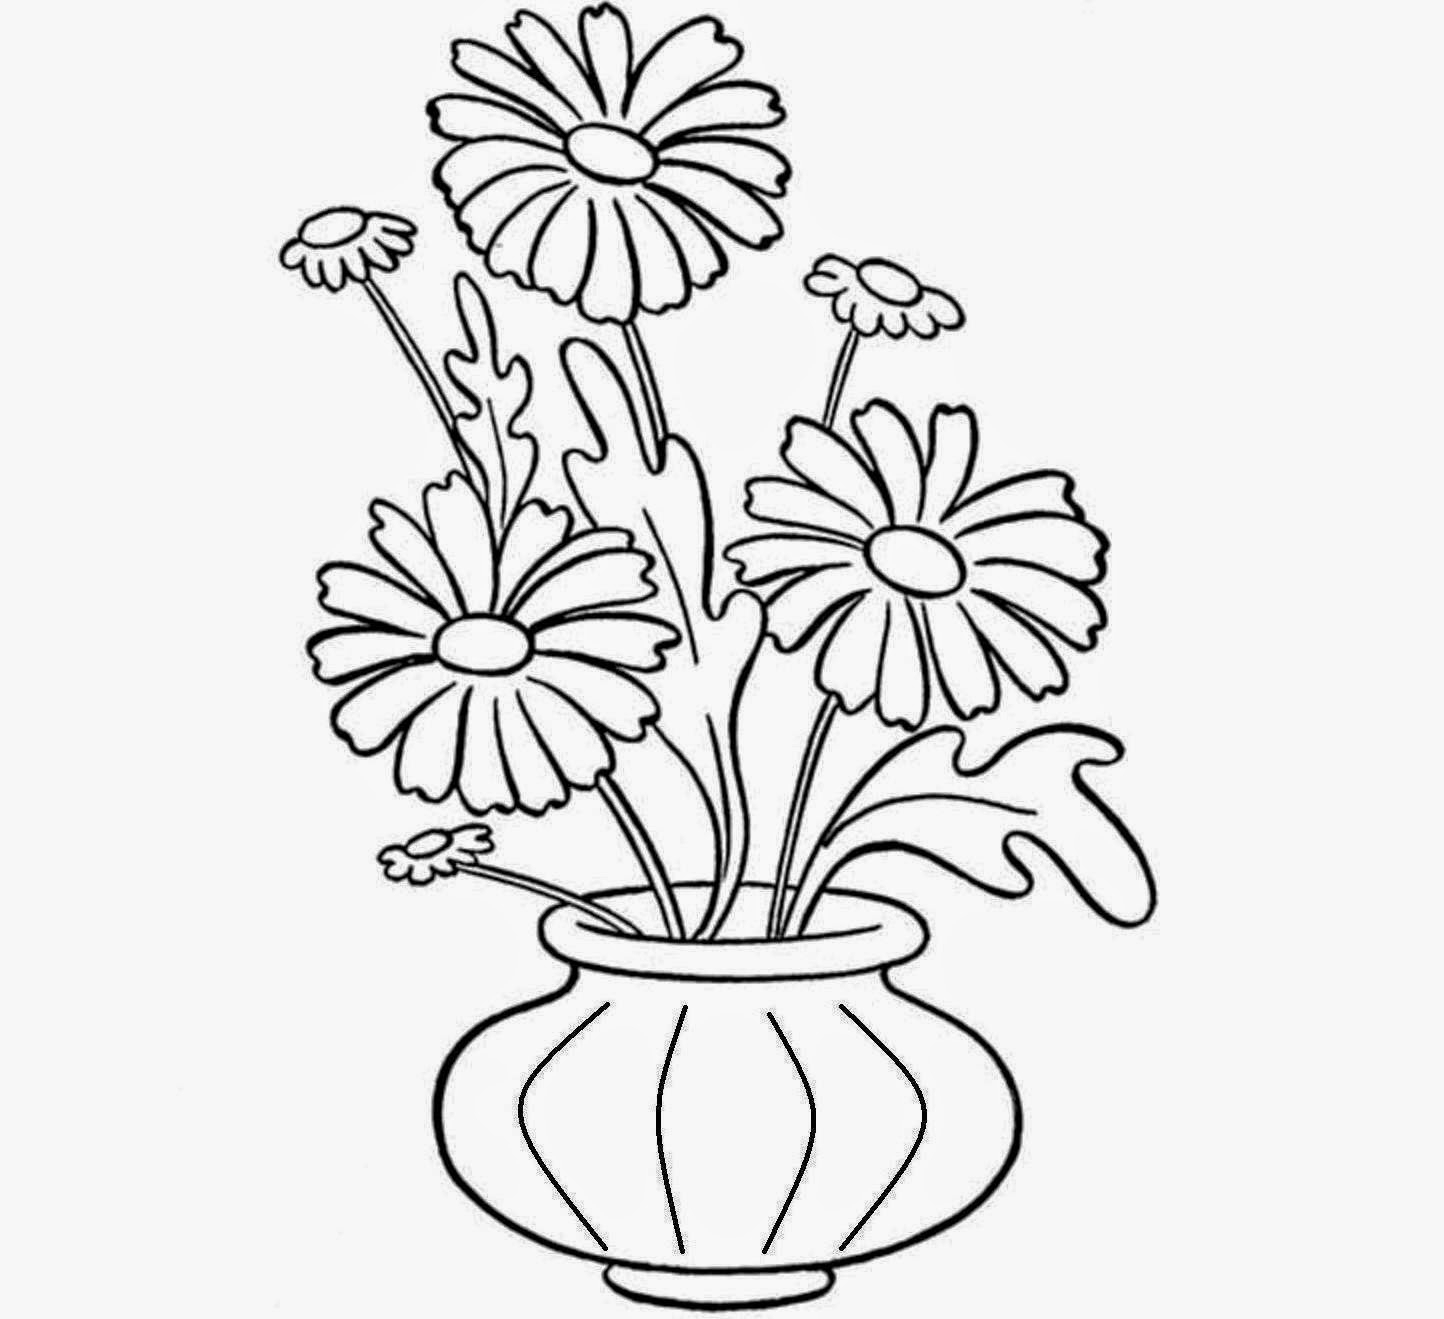 1444x1319 Flower Drawing In Pencil For Kids Pencil Sketch Of Flower Vase